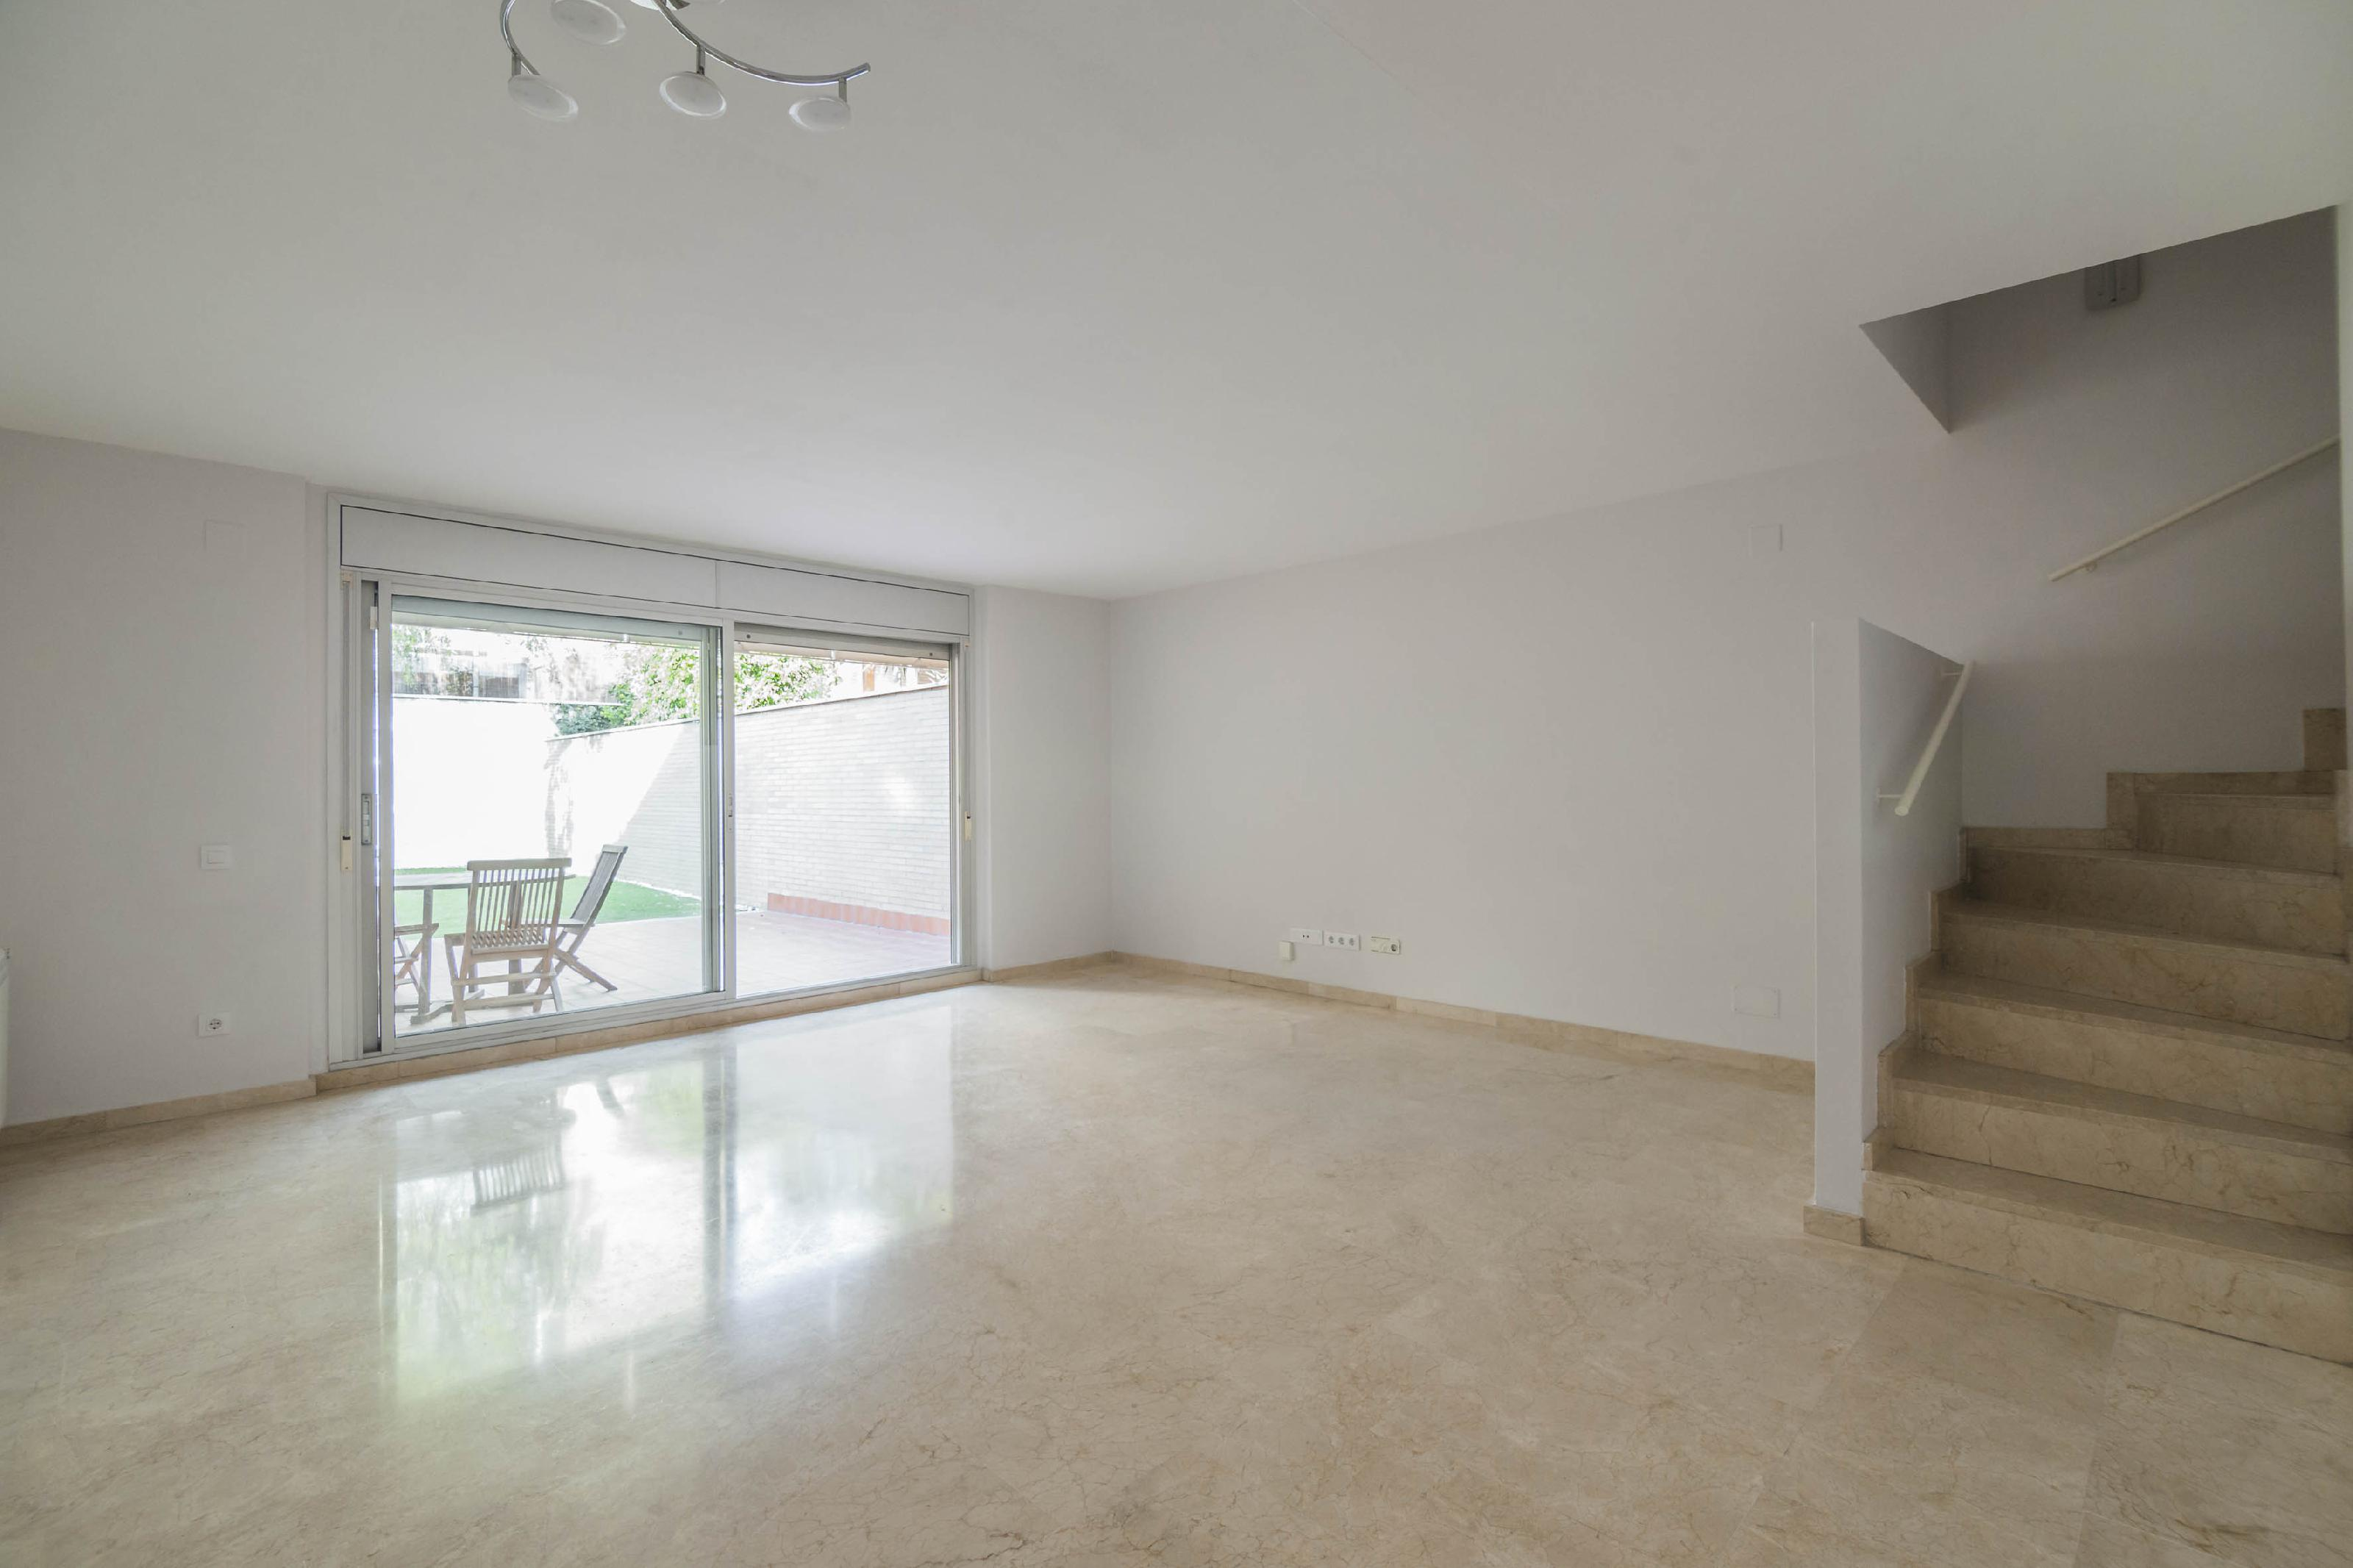 234378 Semi-detached house for sale in Sant Martí, Diagonal Mar and Front Marítim PN 27